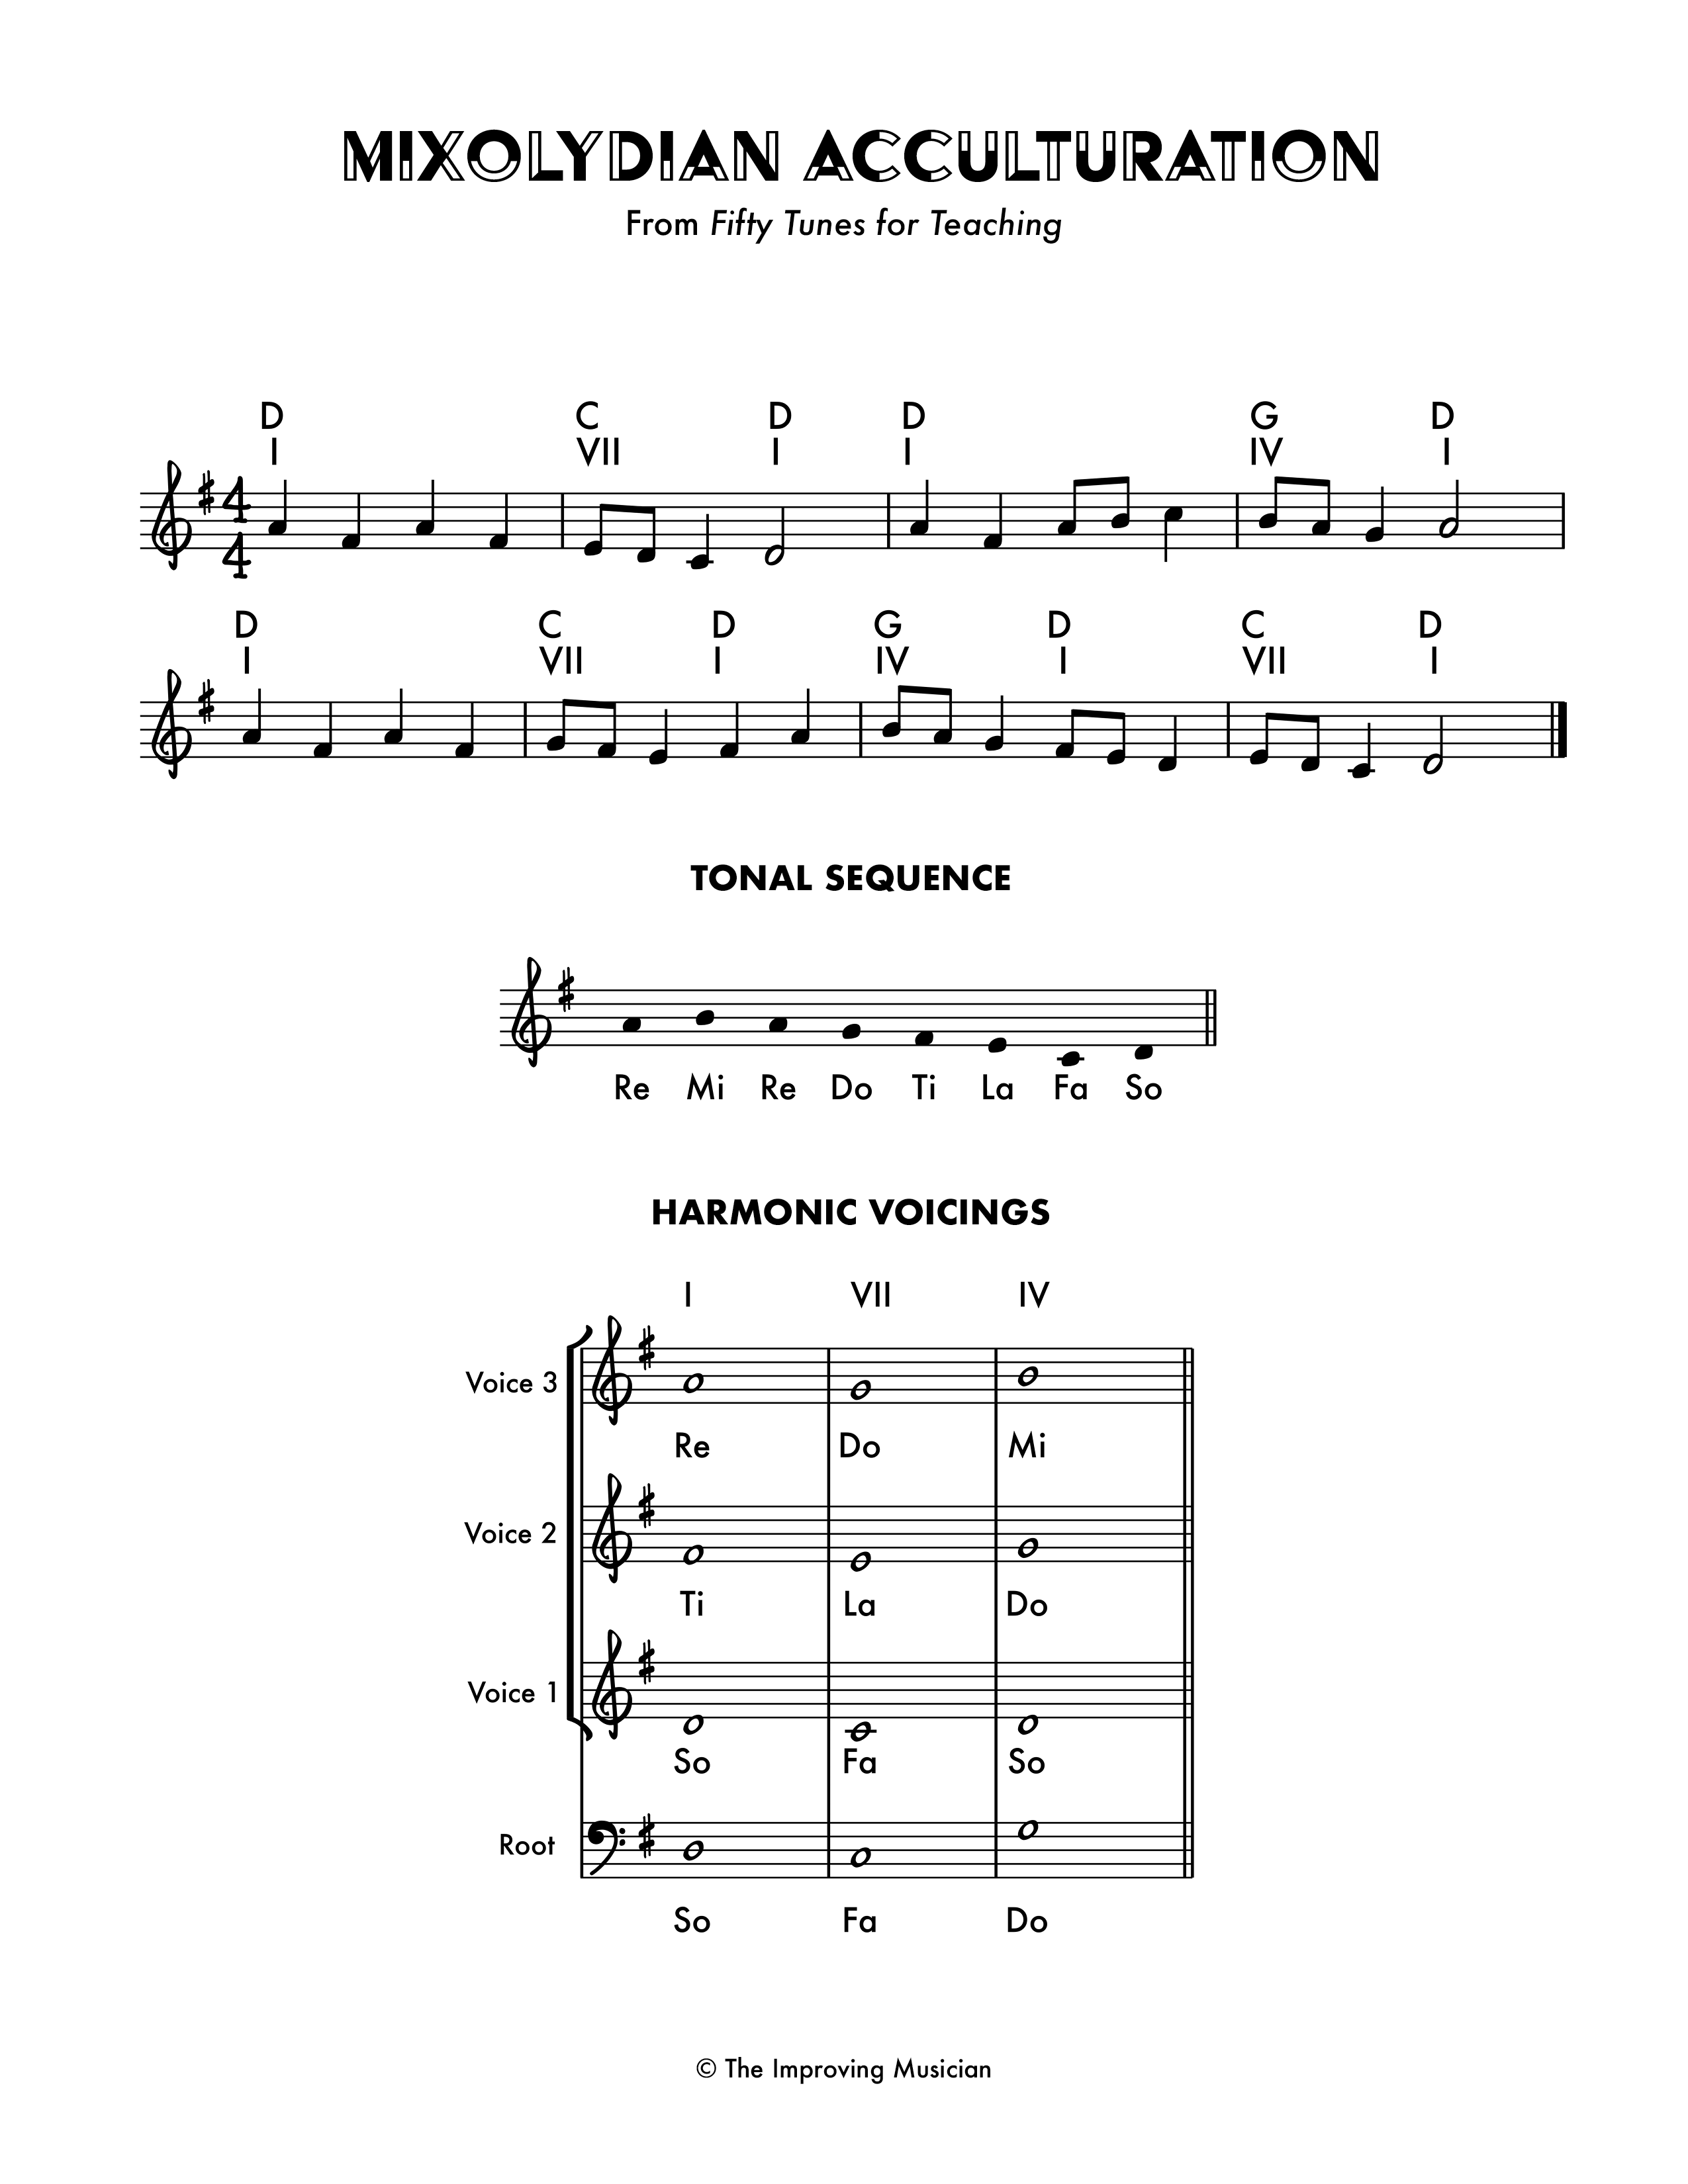 Mixolydian Acculturation - Student Library